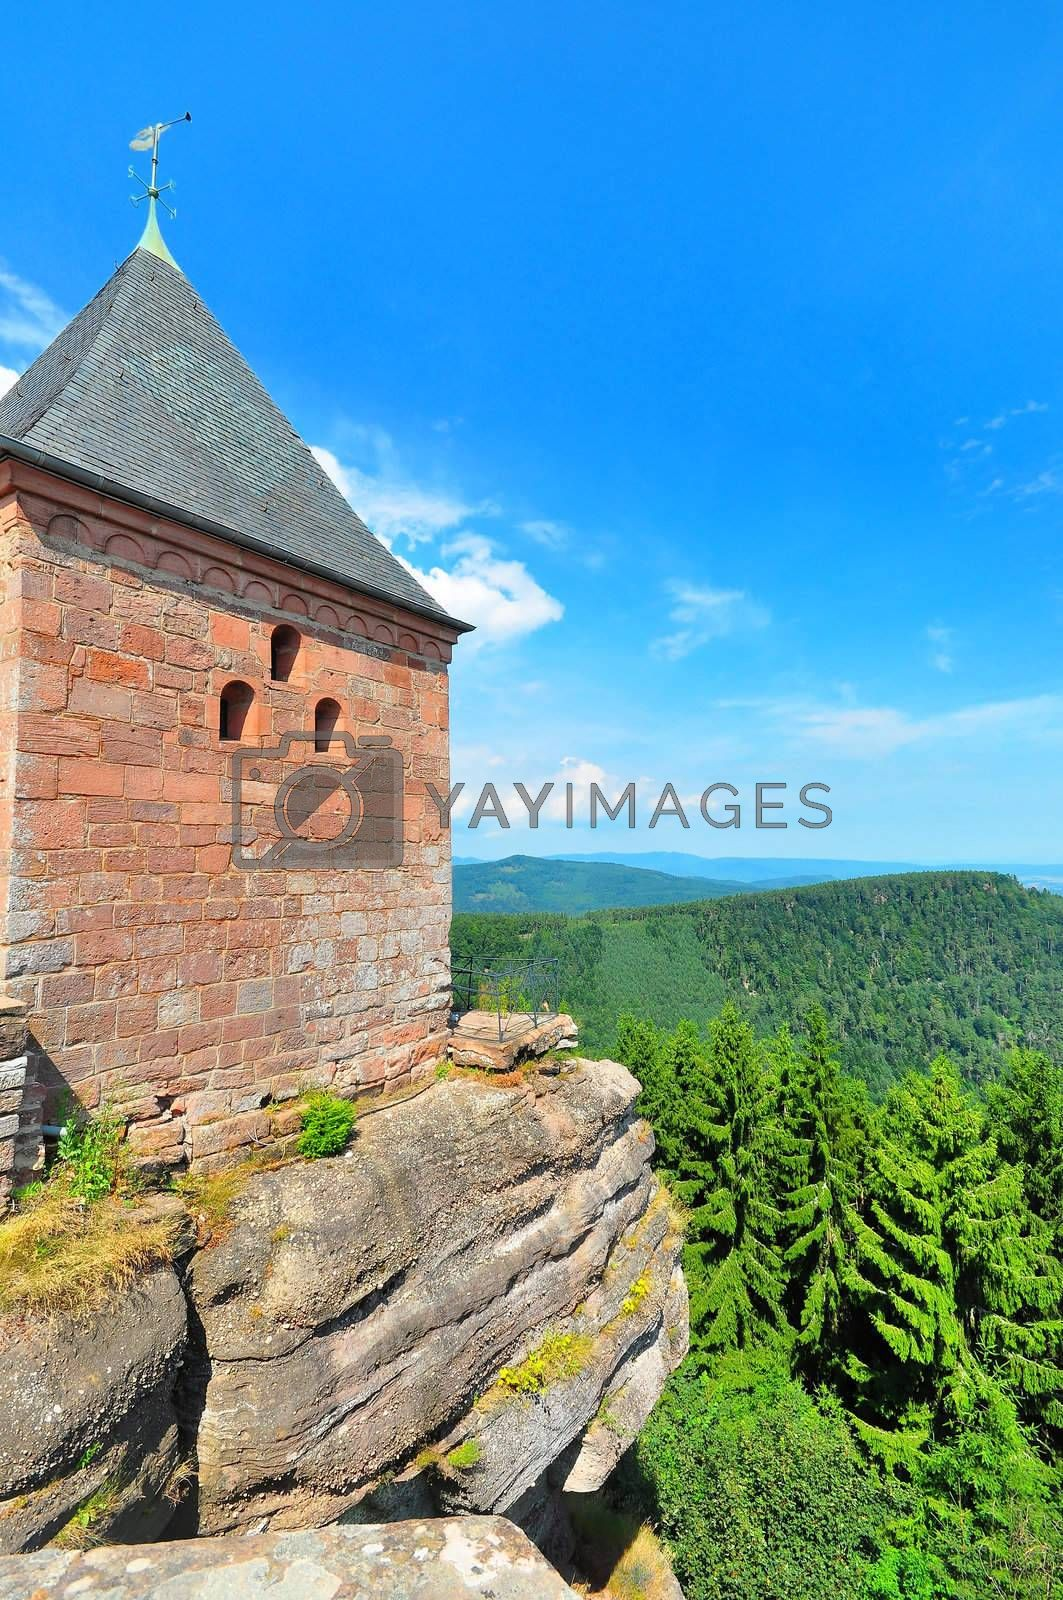 Royalty free image of Sainte Odile Monastery by mpgphoto